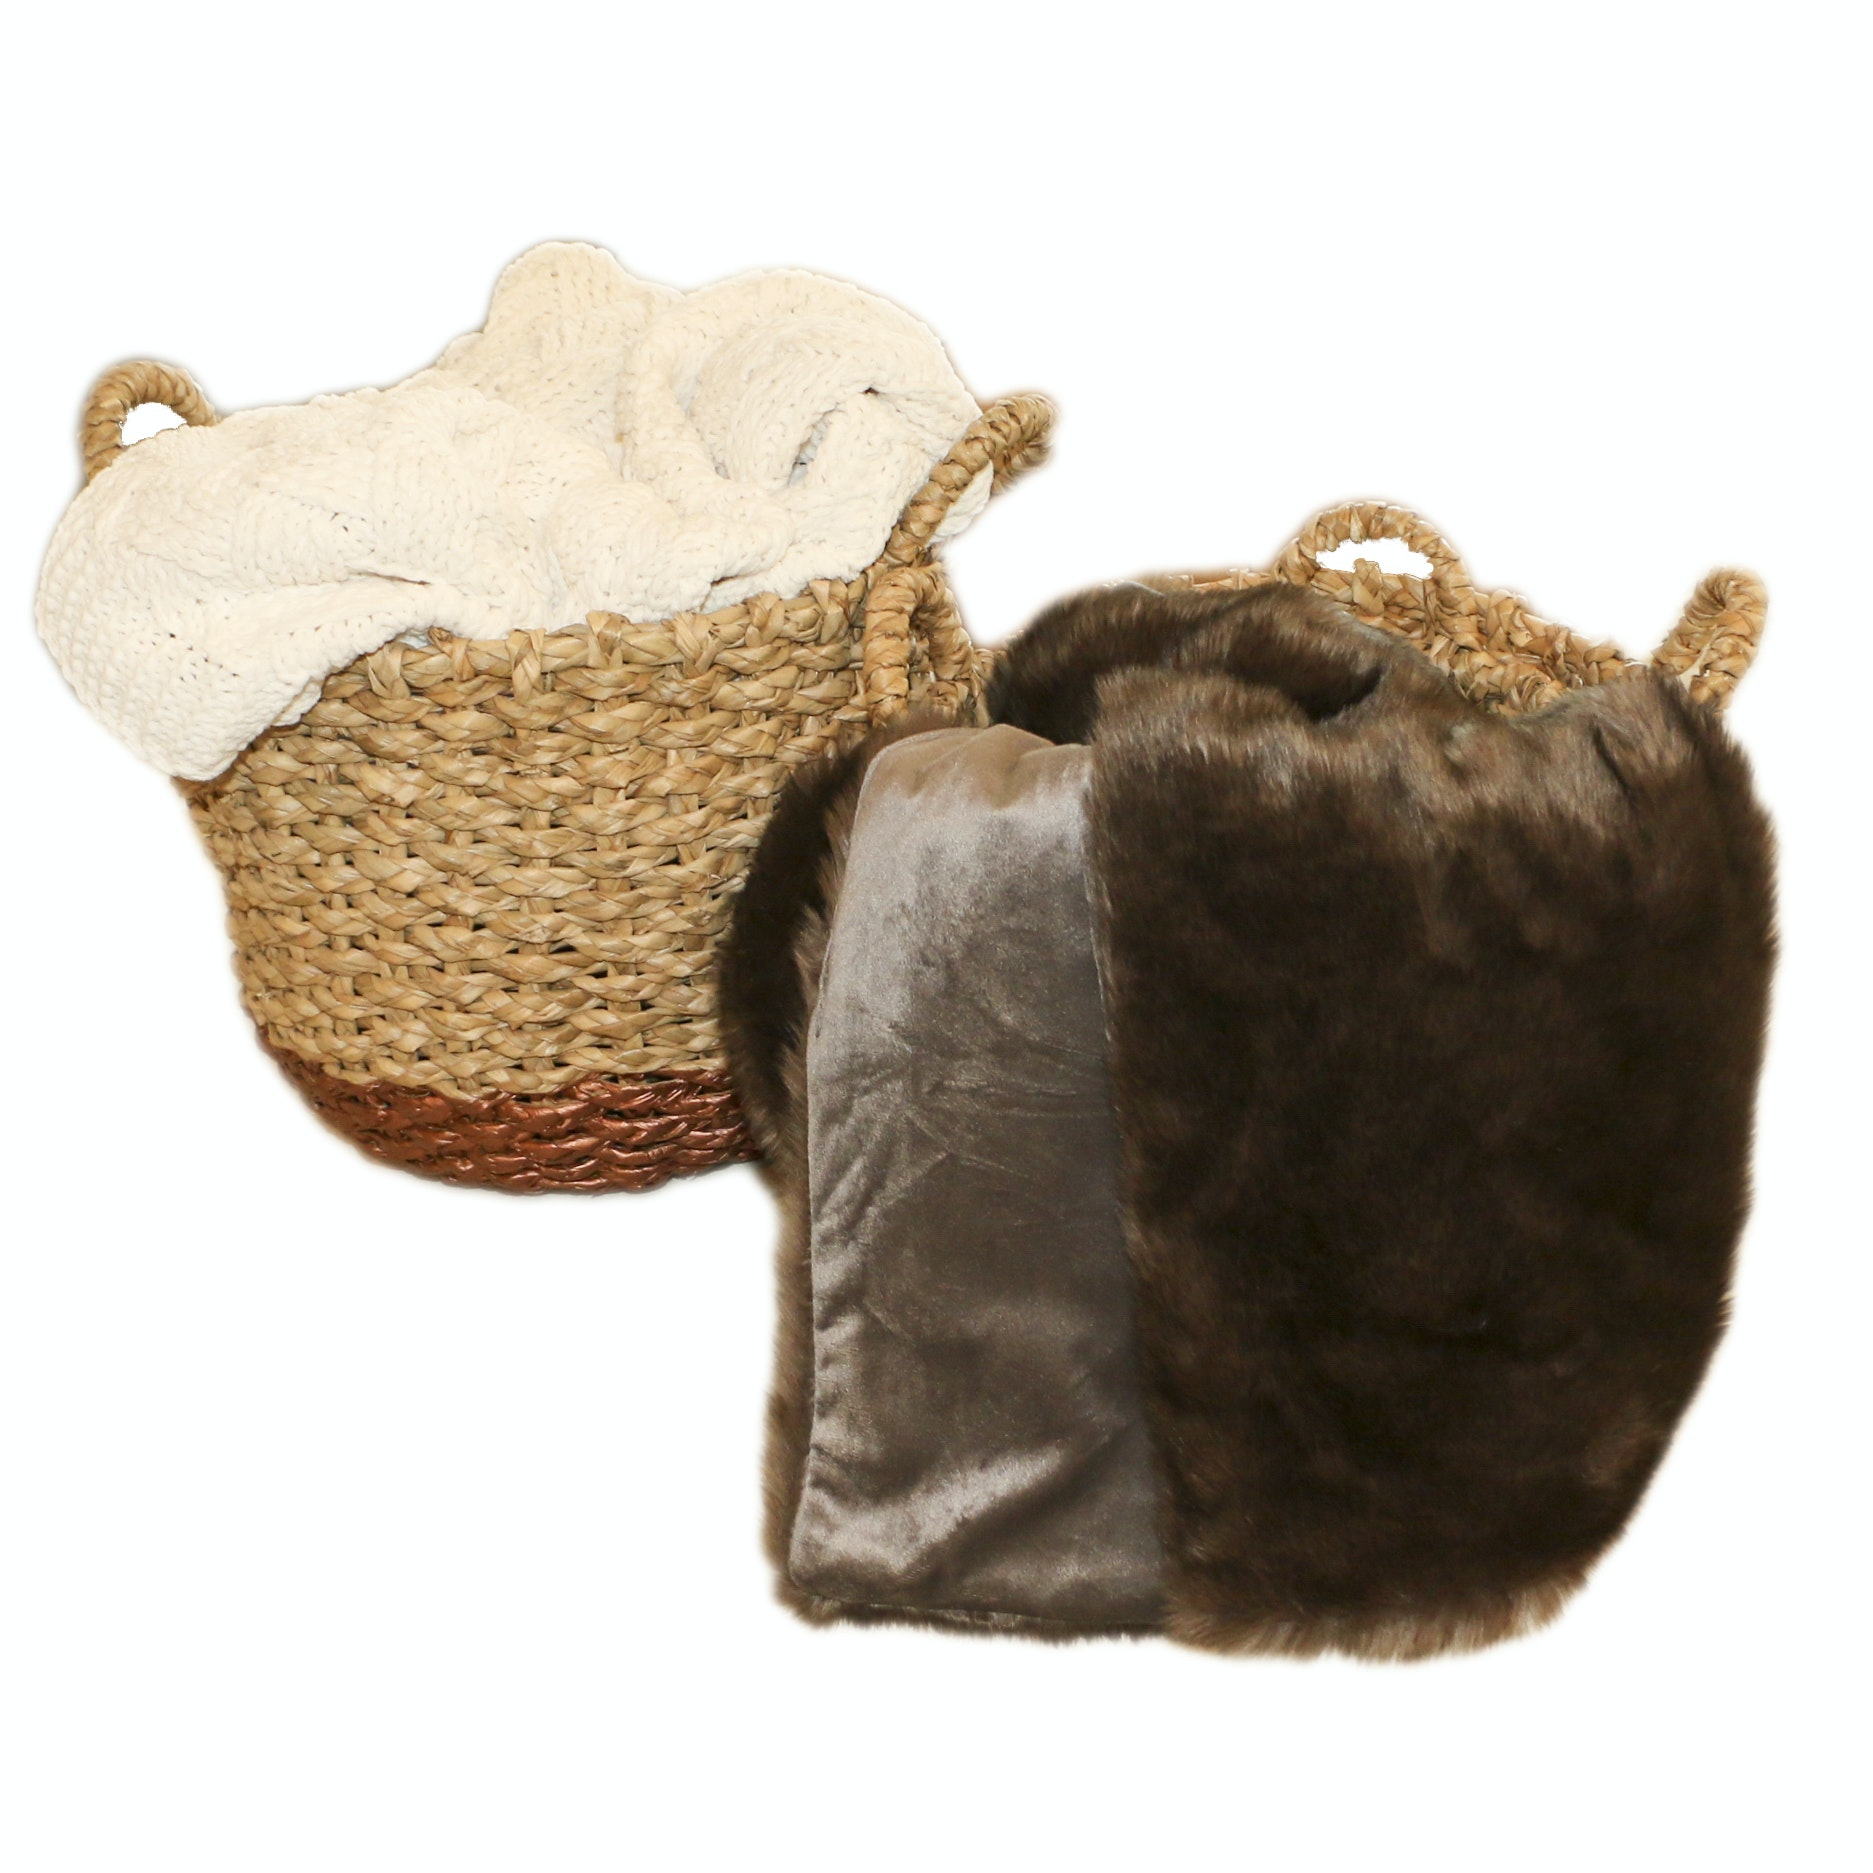 Woven Storage Baskets with Faux Mink and Knit Throws